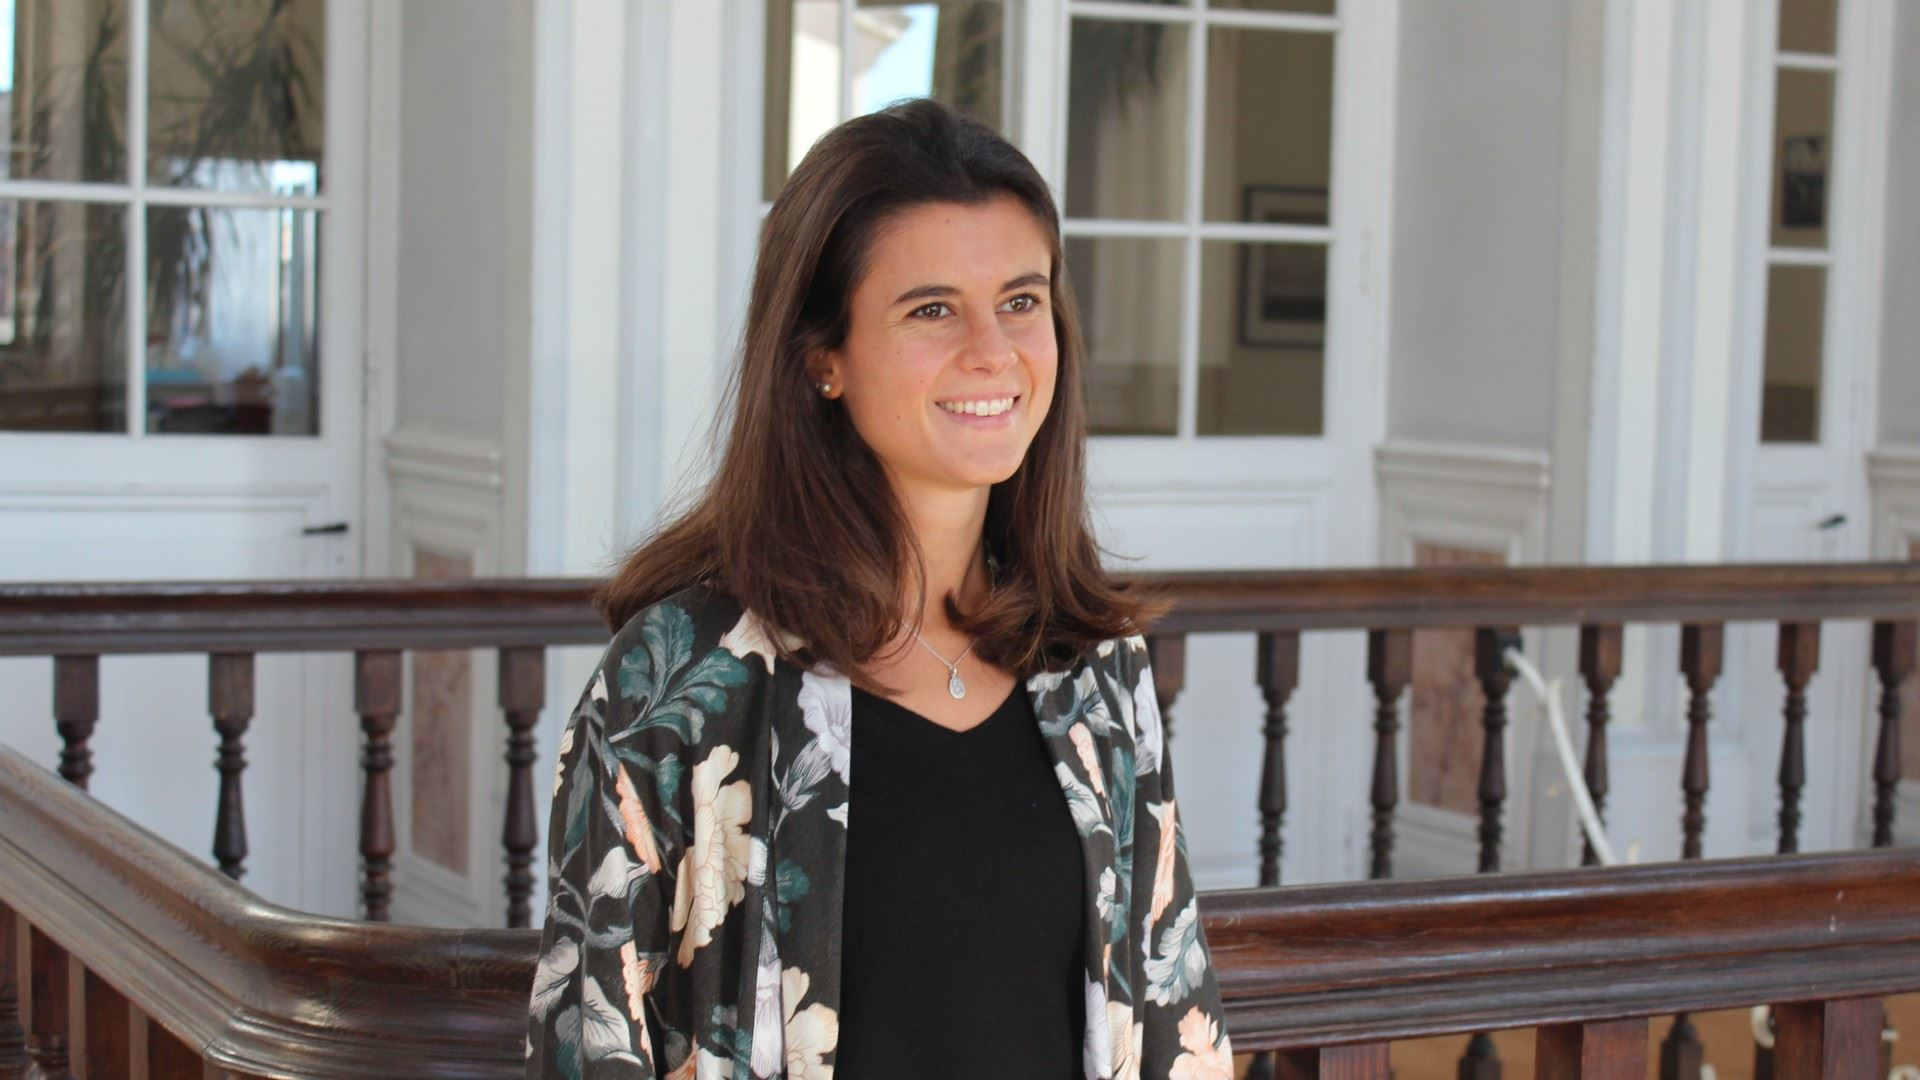 Meet the Nova SBE Fellows – Maria Gabriela Teixeira Duarte